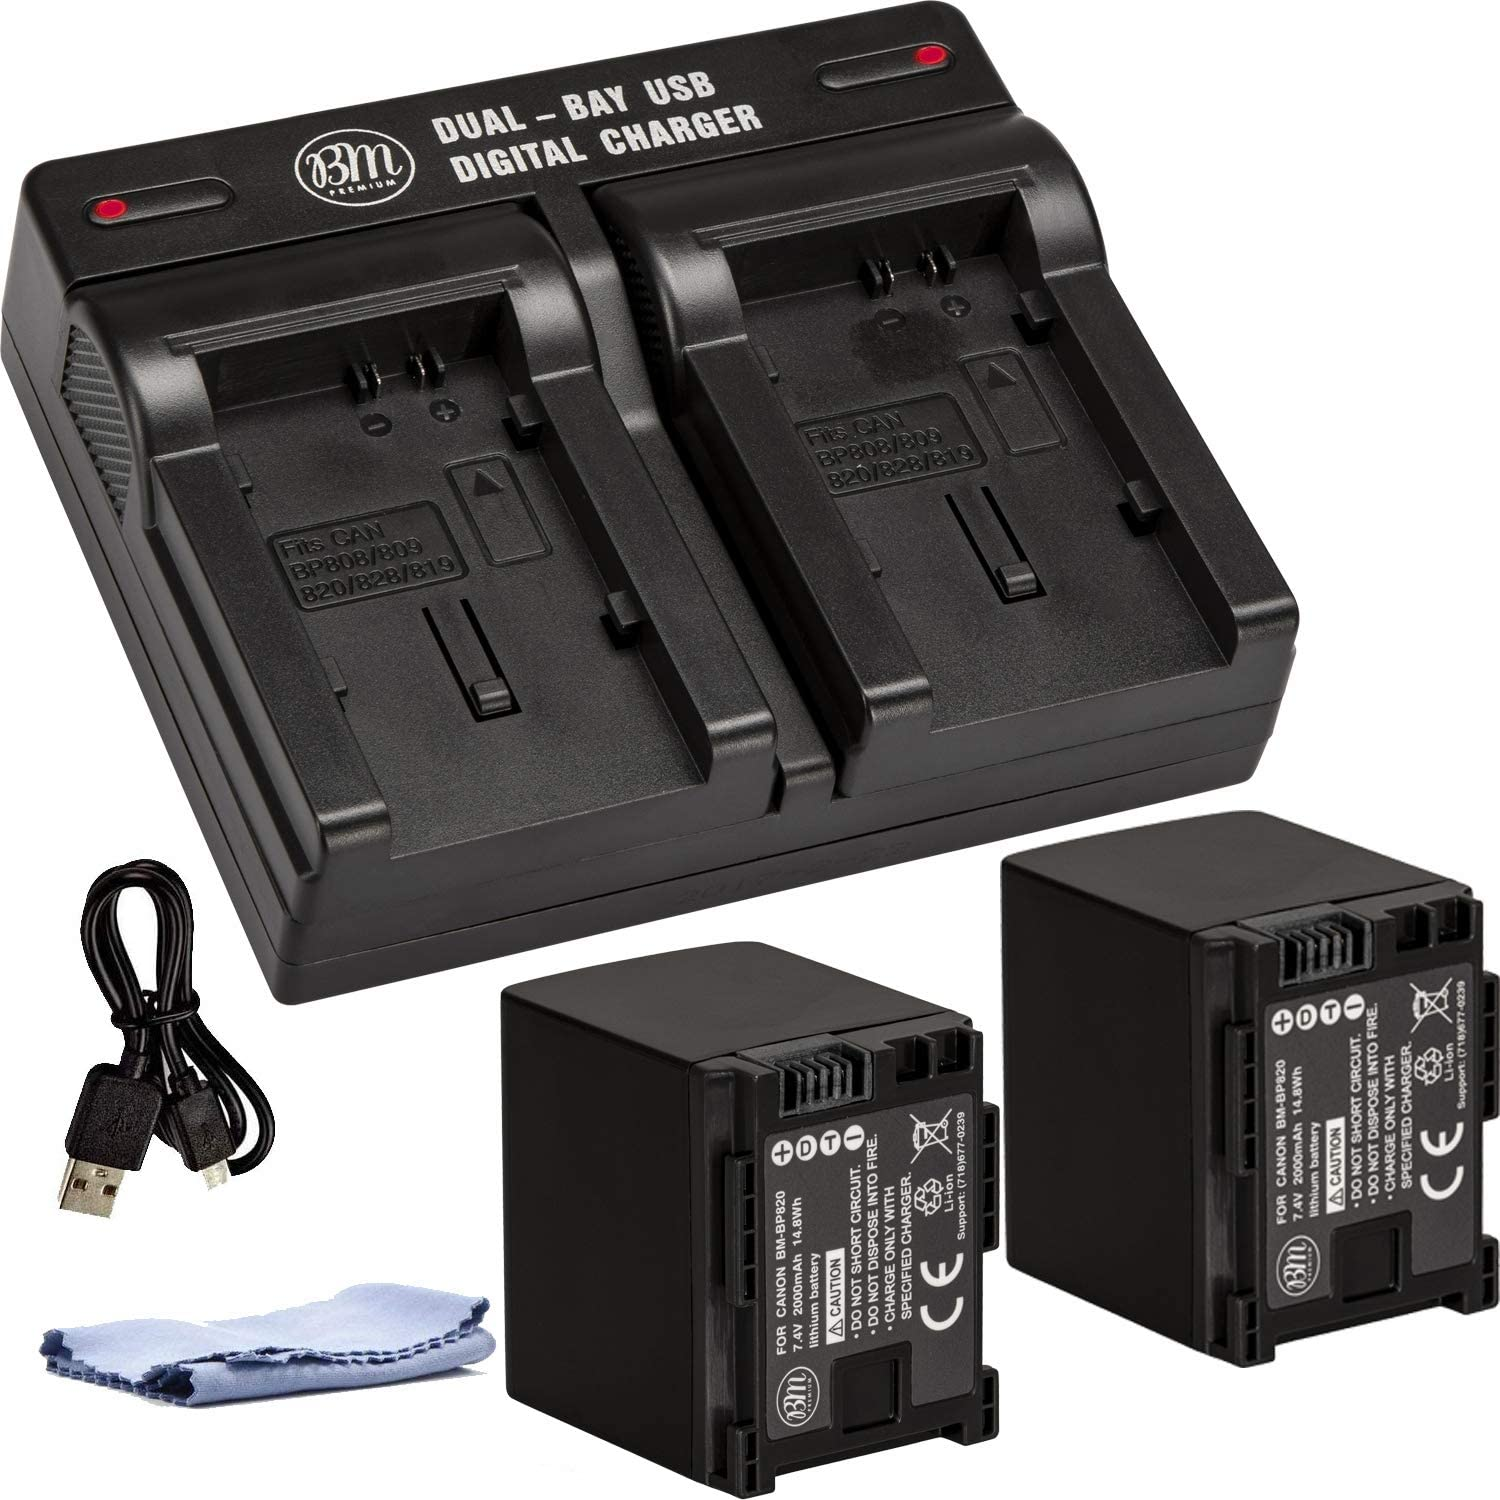 BM 2 BP-820 Batteries and Dual Battery Charger for Canon VIXIA HF G50, HF G60, XA40, XA45, XA50, XA55, GX10, HFG20, HF G21, HFG30, HFG40, HFM301, HFM41, HFM400, XA10 XA11 XA15 XA20 XA25 XF400 XF405 : Camera & Photo